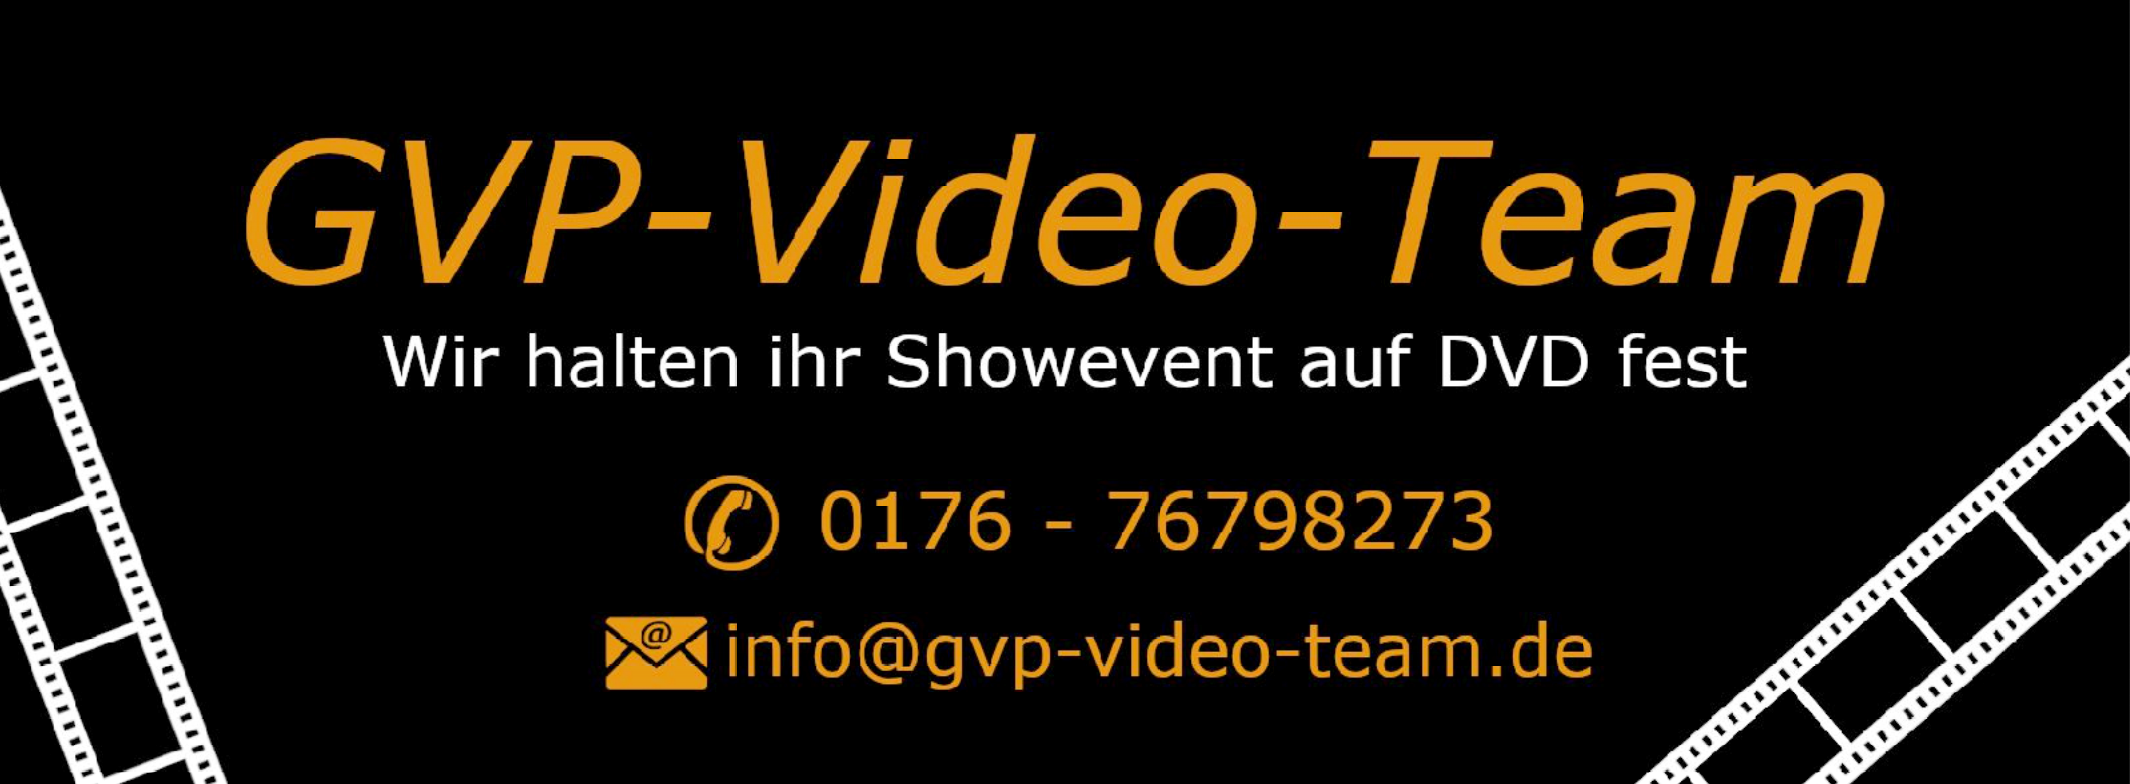 GVP-Video-Team